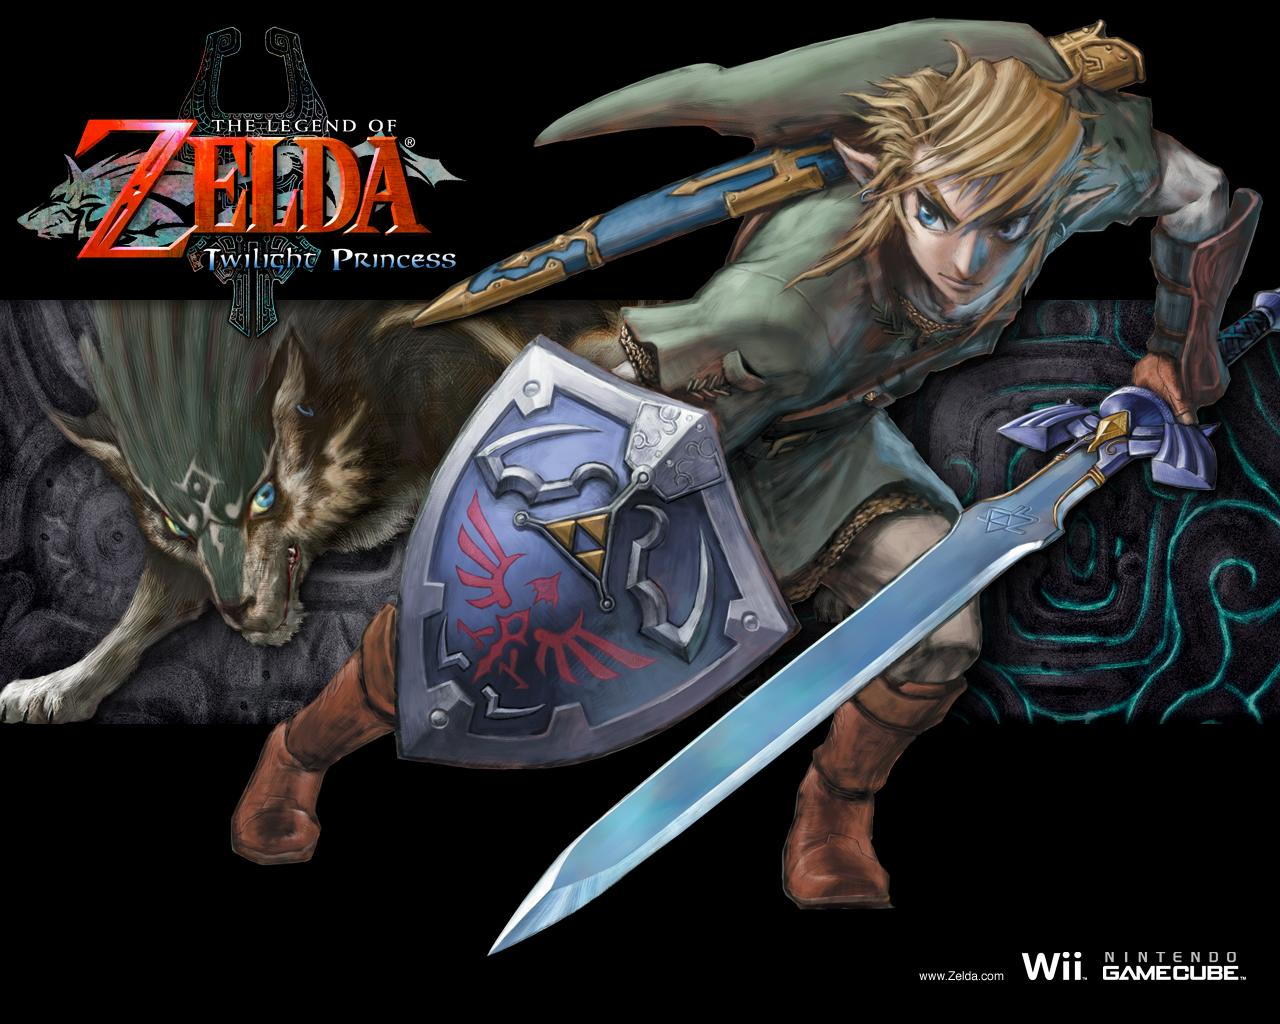 http://2.bp.blogspot.com/_prfEZsOVdCA/S8N9jq_CIfI/AAAAAAAAAX8/EEhyqta5lvc/s1600/the_legend_of_zelda_twilight_princess_wii_wallpaper.jpg